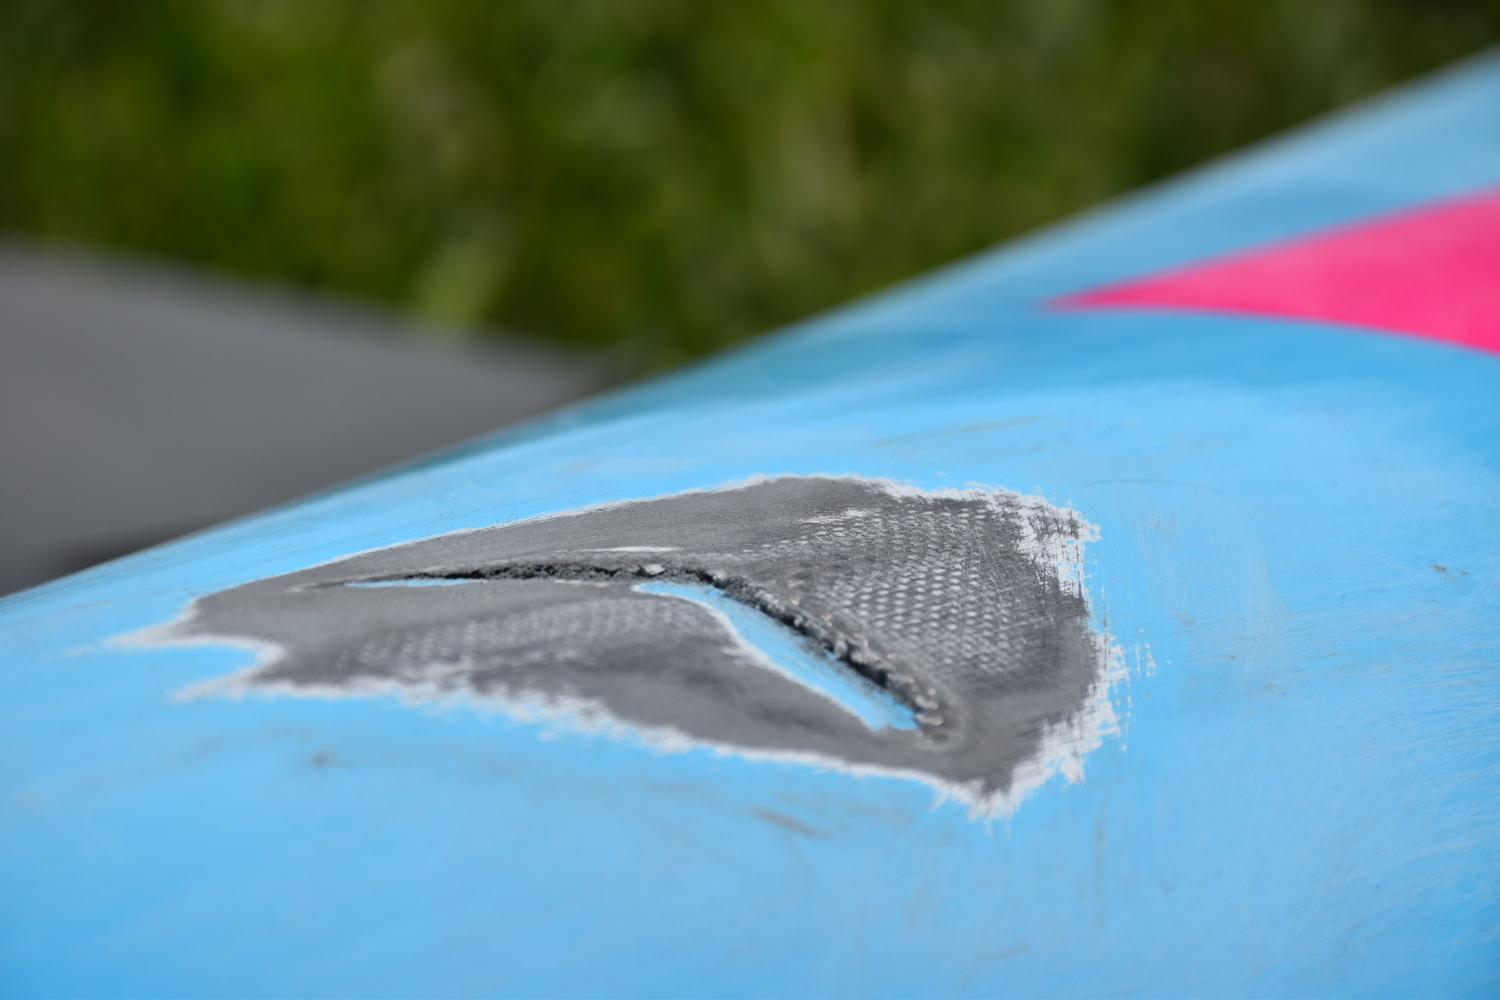 Fiberglass Embedded Graphics : Carbon race v paddleboard how i repaired cracks in